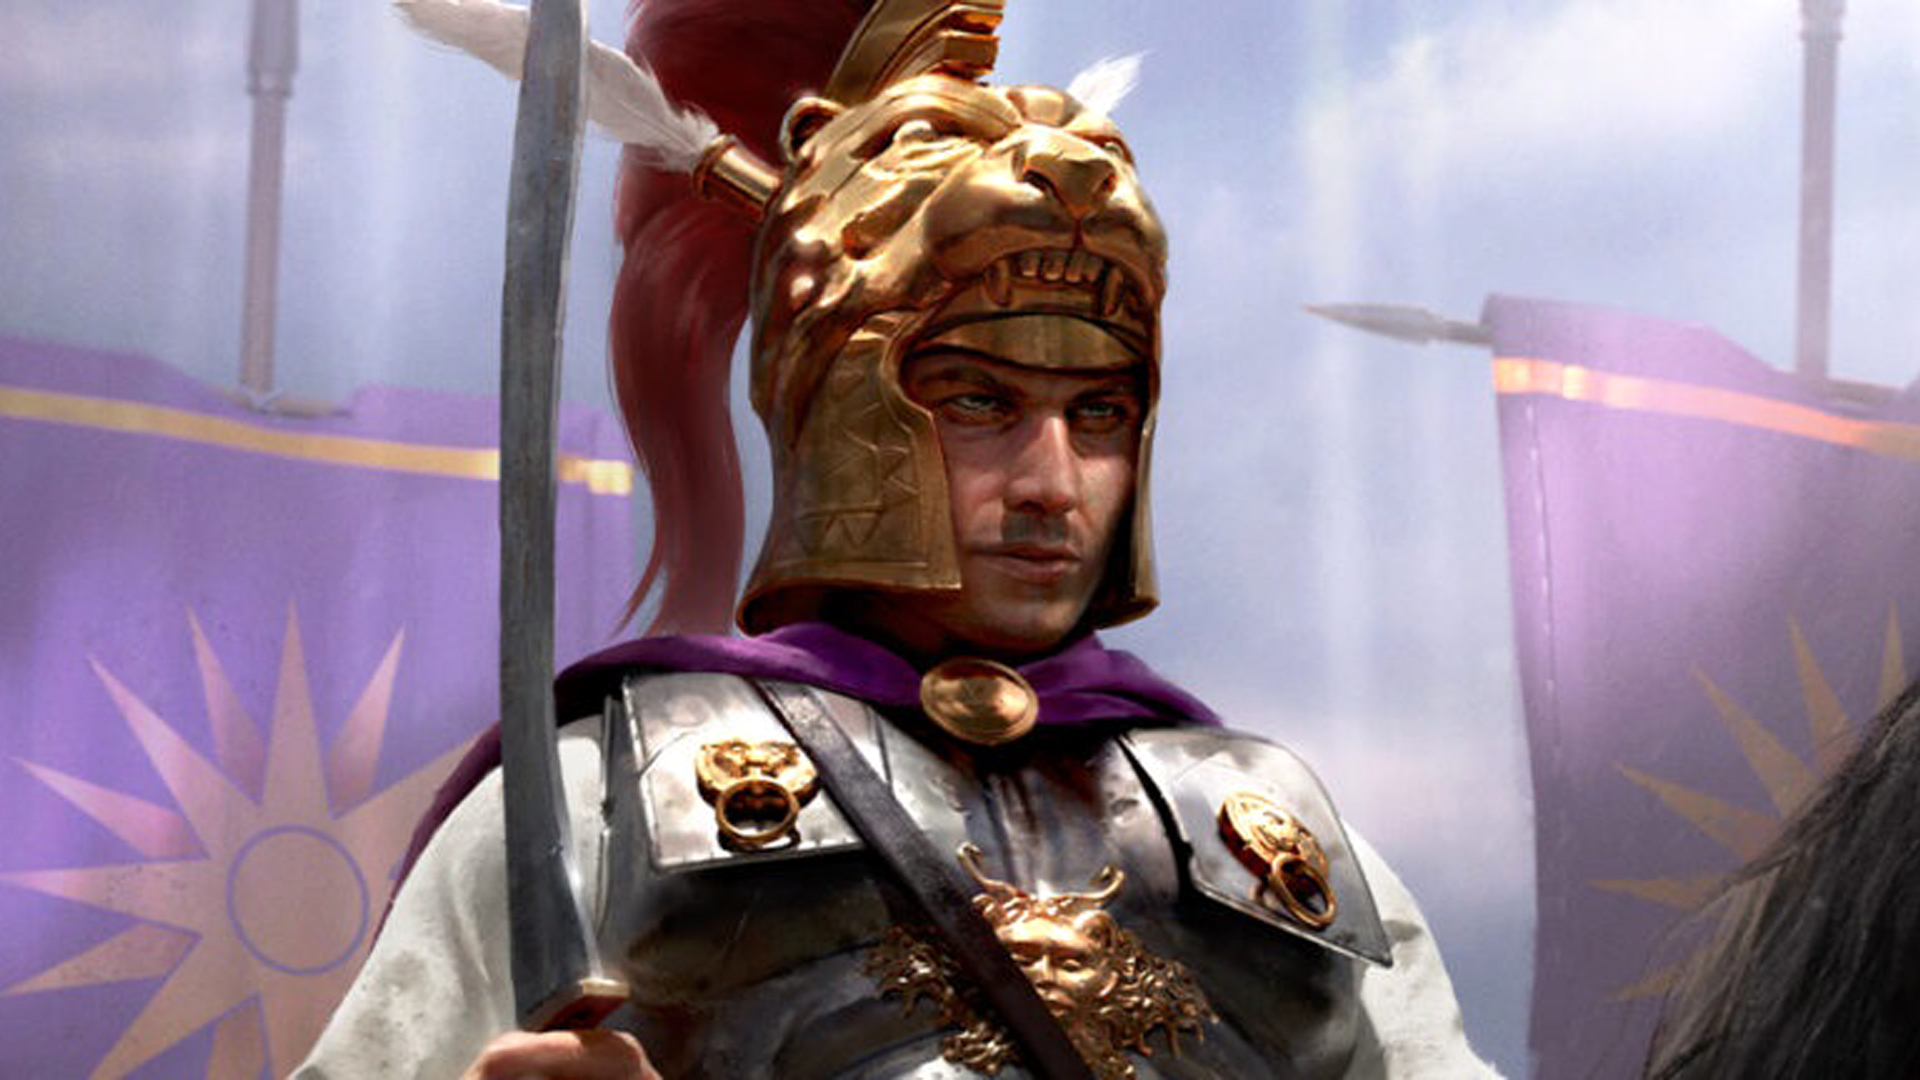 Total War: Rome Remastered's new patch lifts mod caps improves functionality